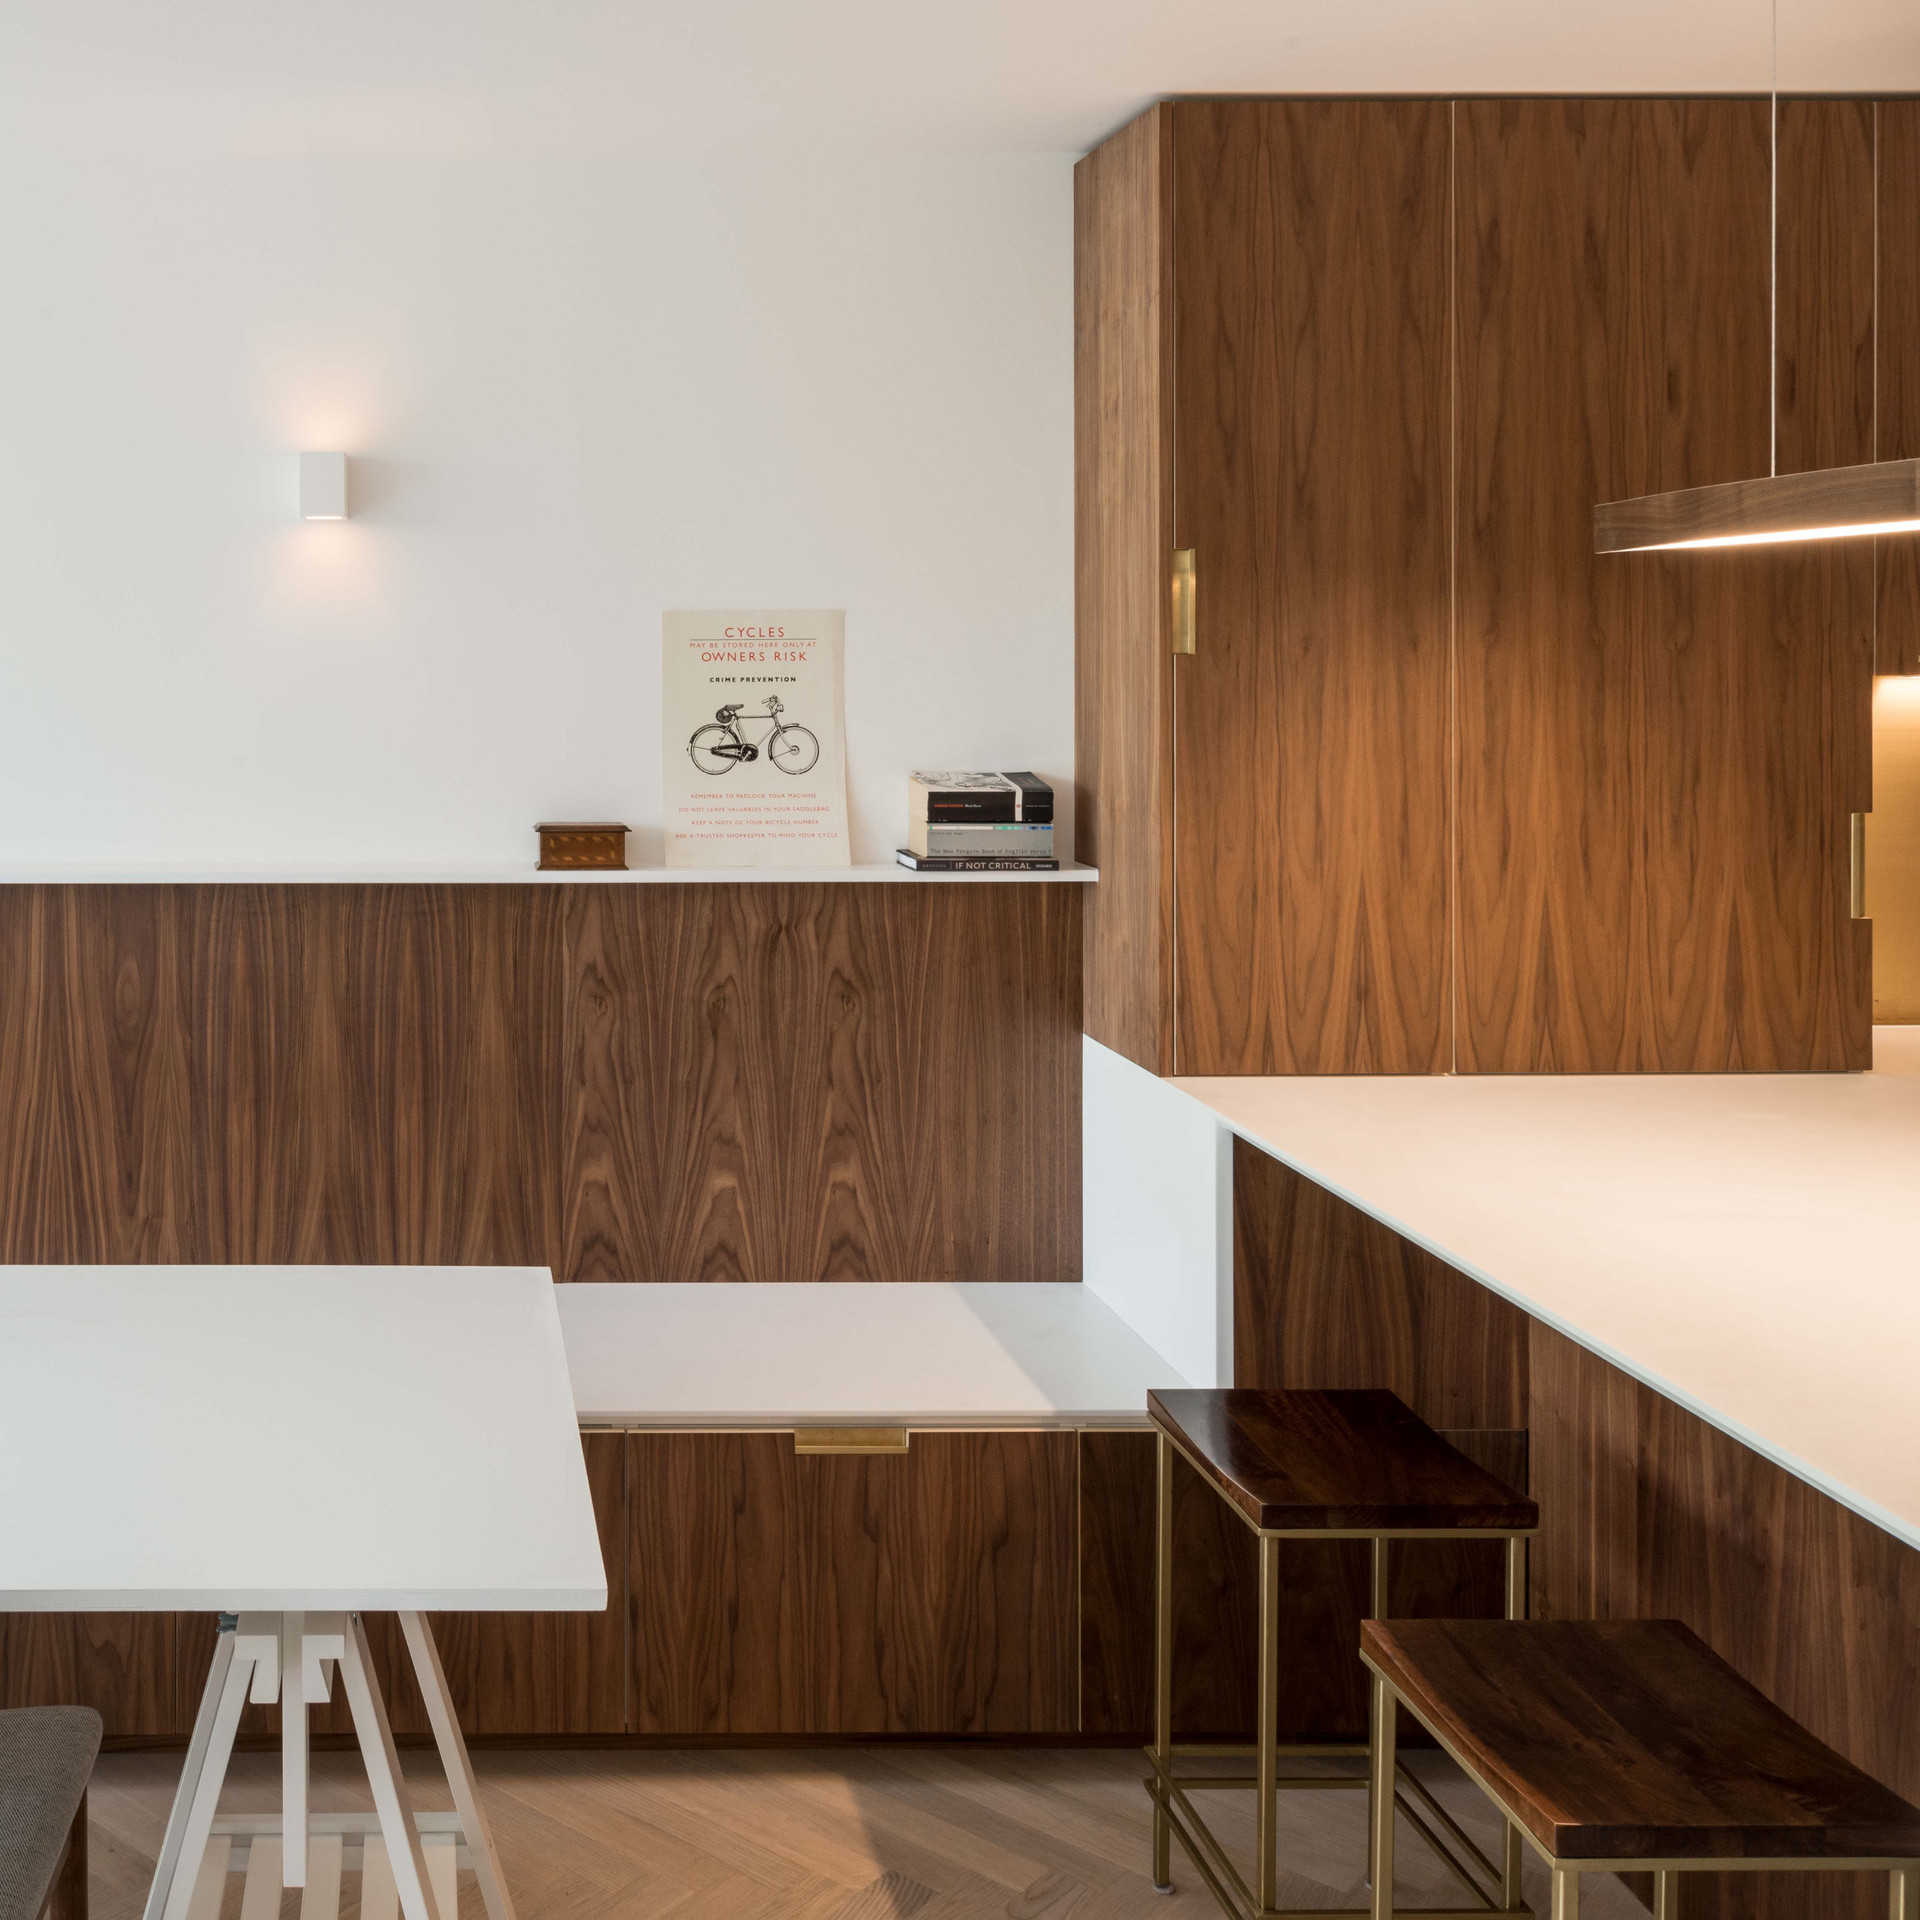 House in Wandsworth